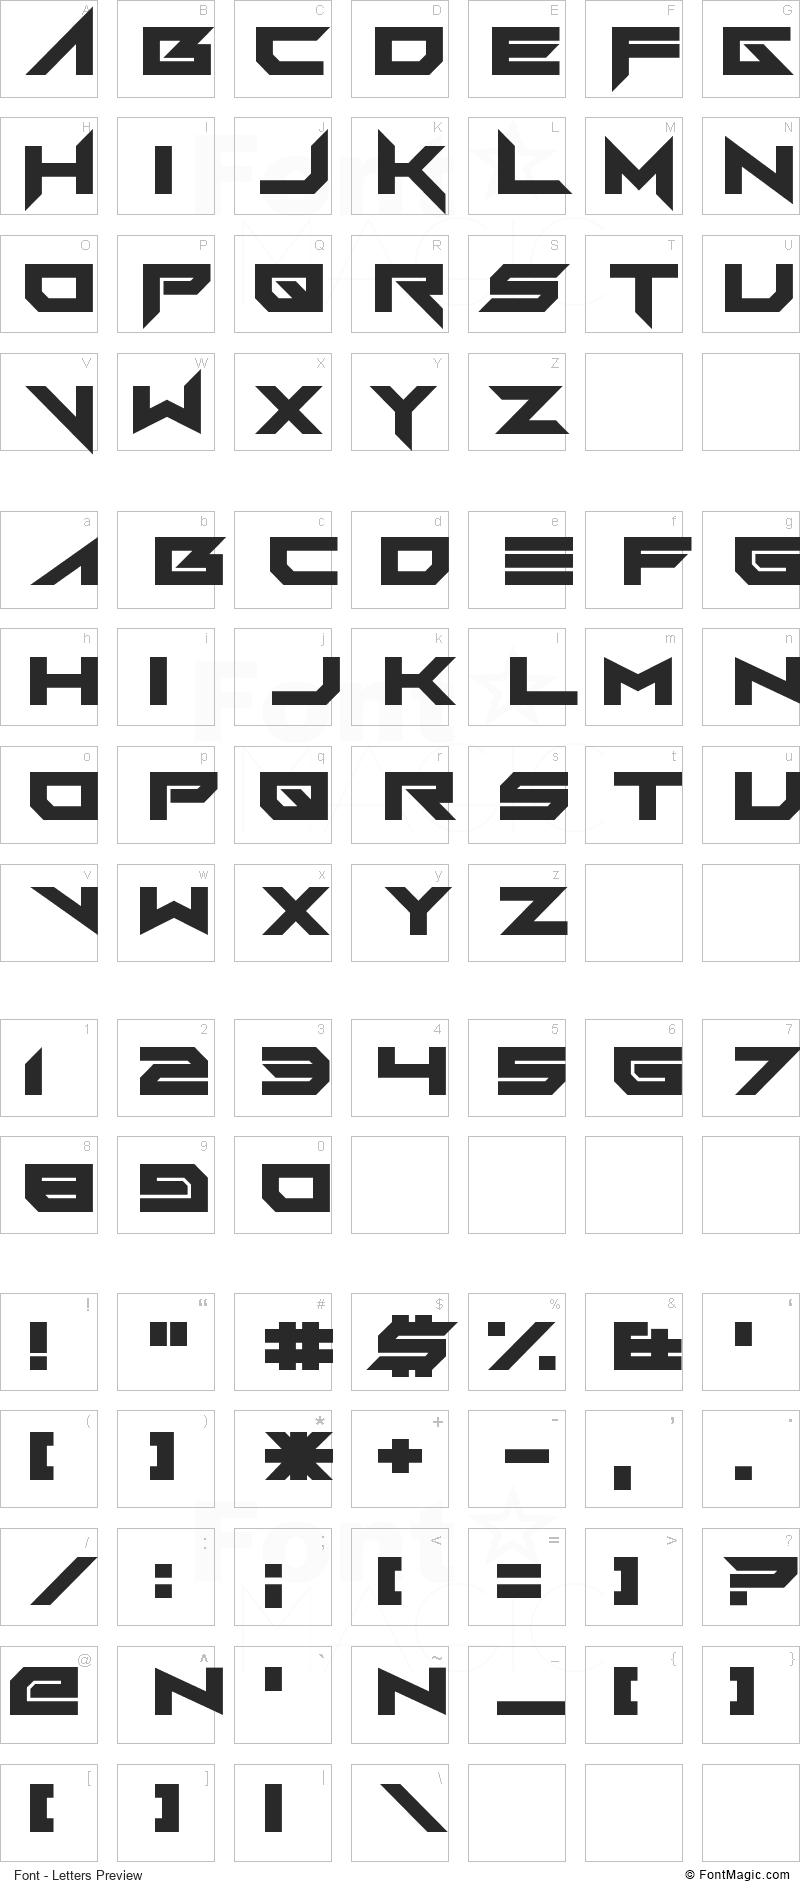 FoughtKnight Victory Font - All Latters Preview Chart